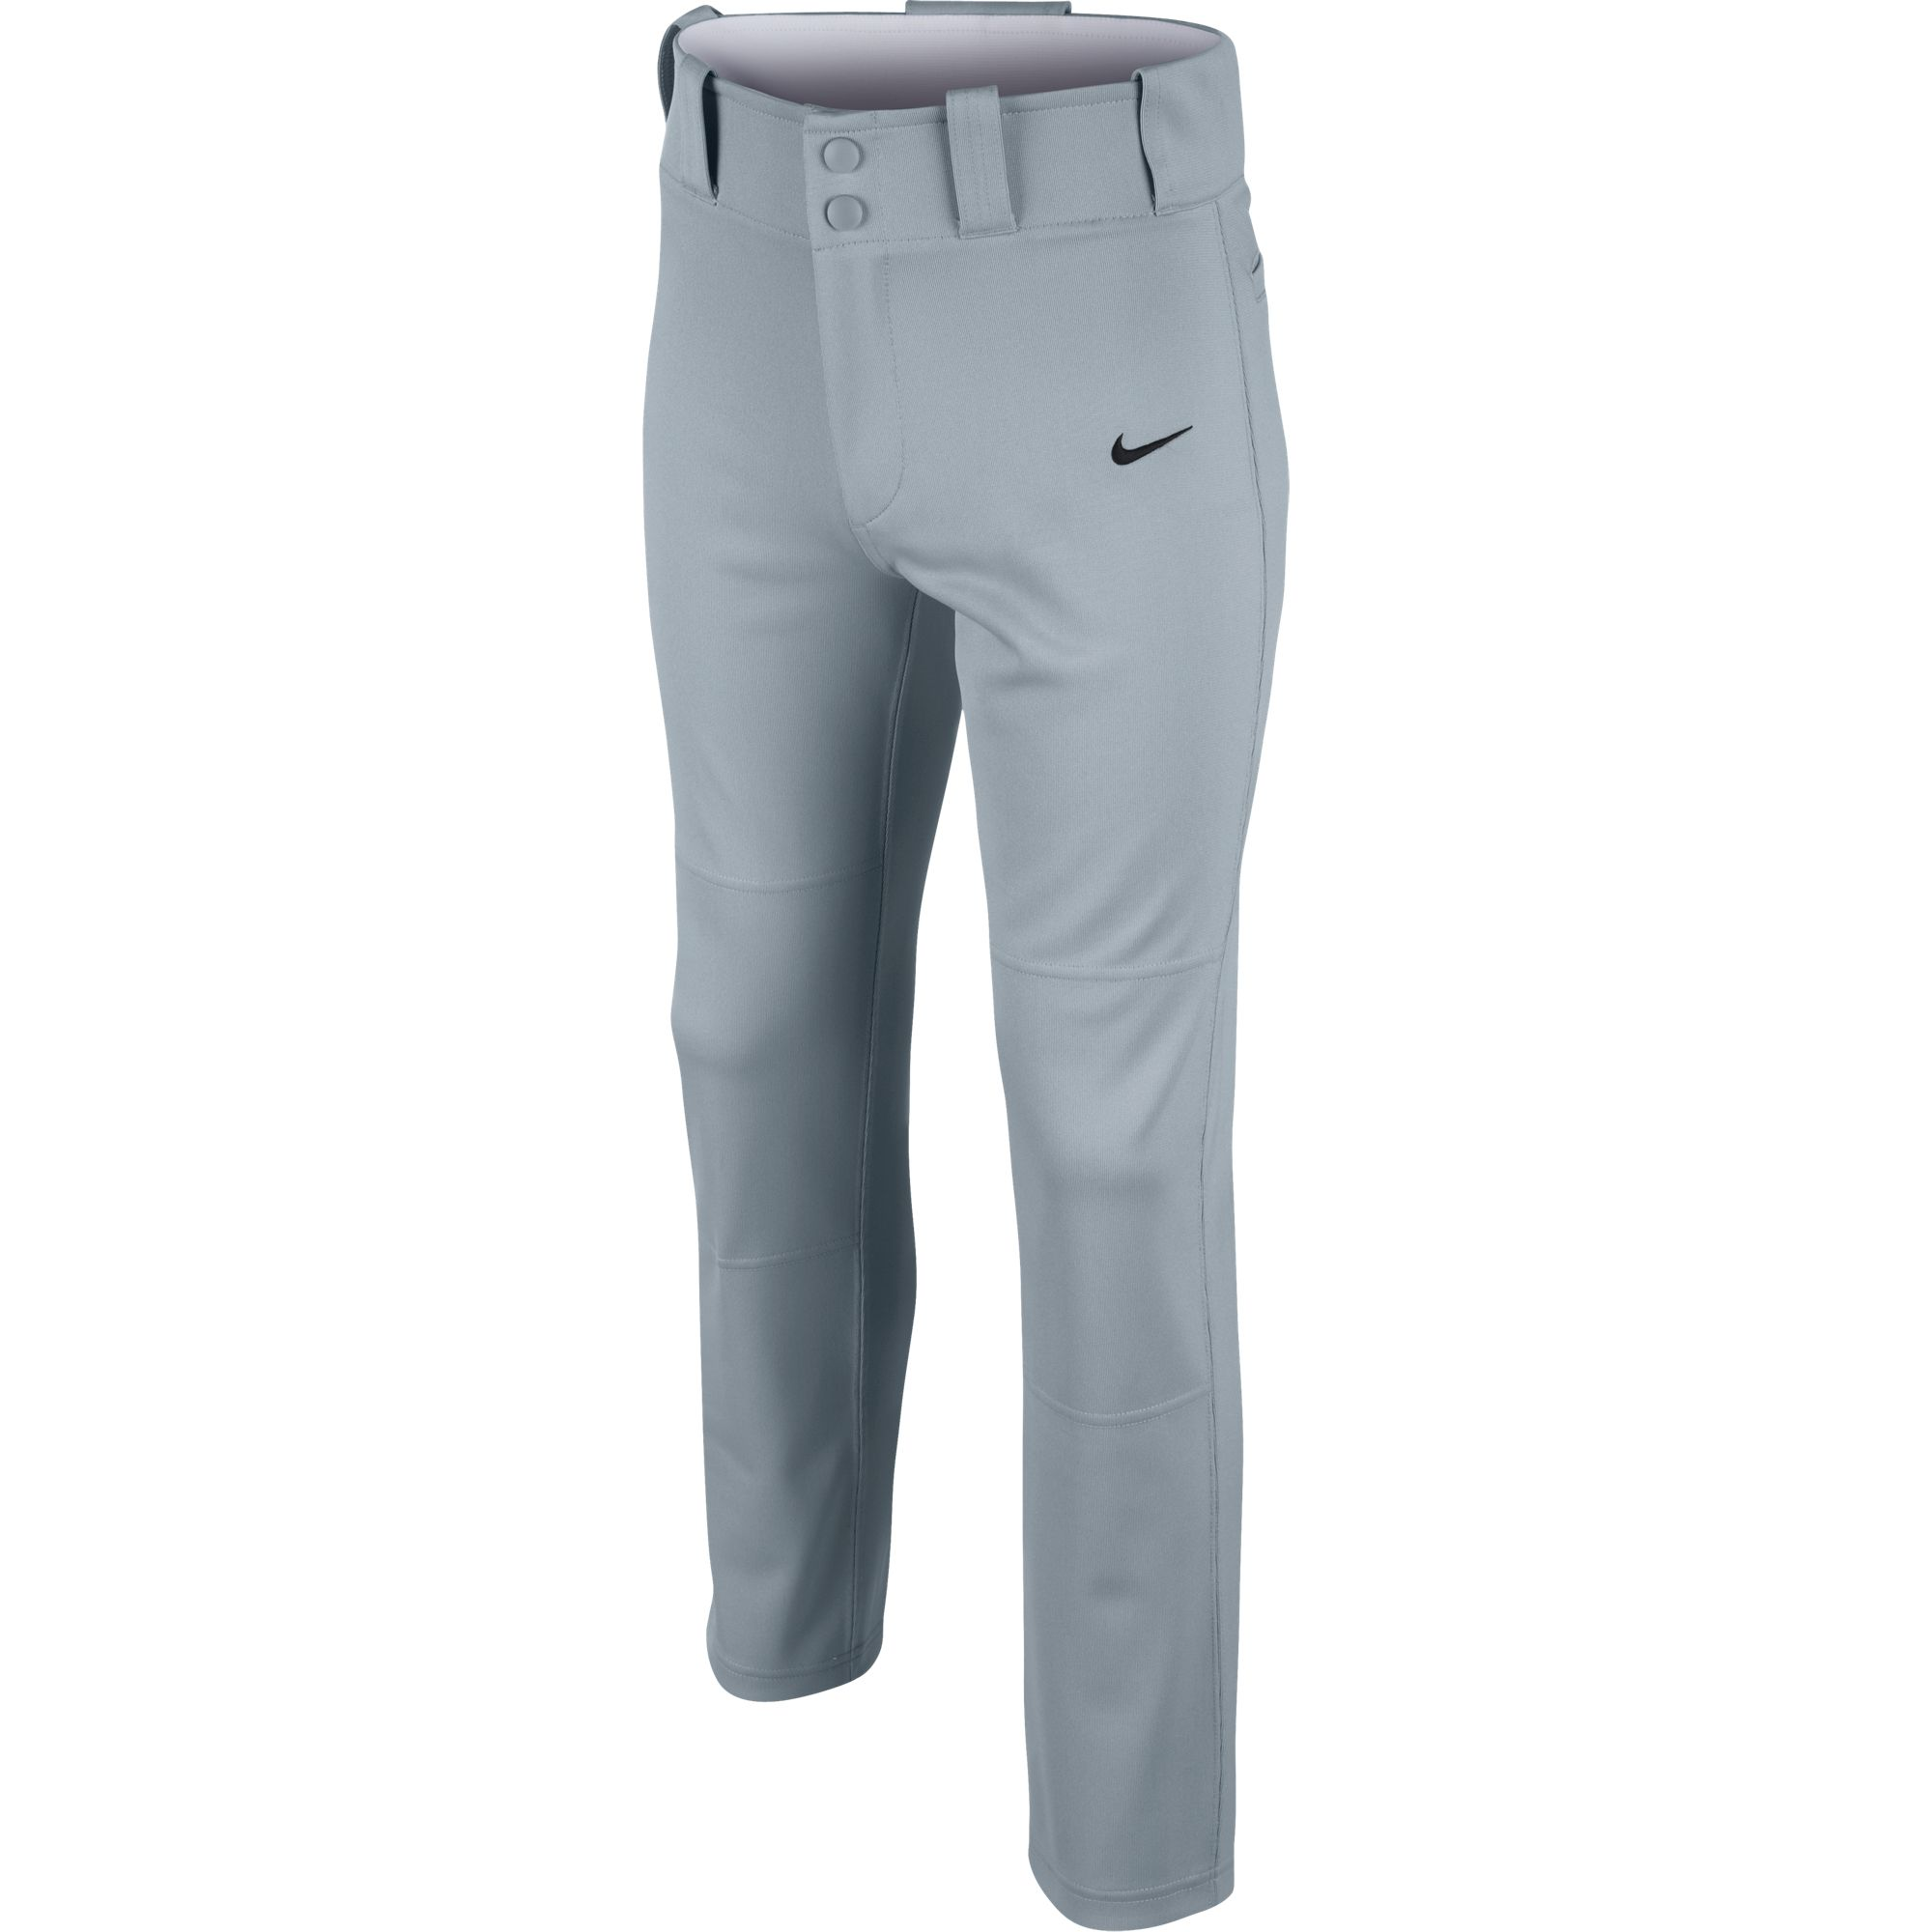 Youth Core Baseball Pant, Gray, swatch